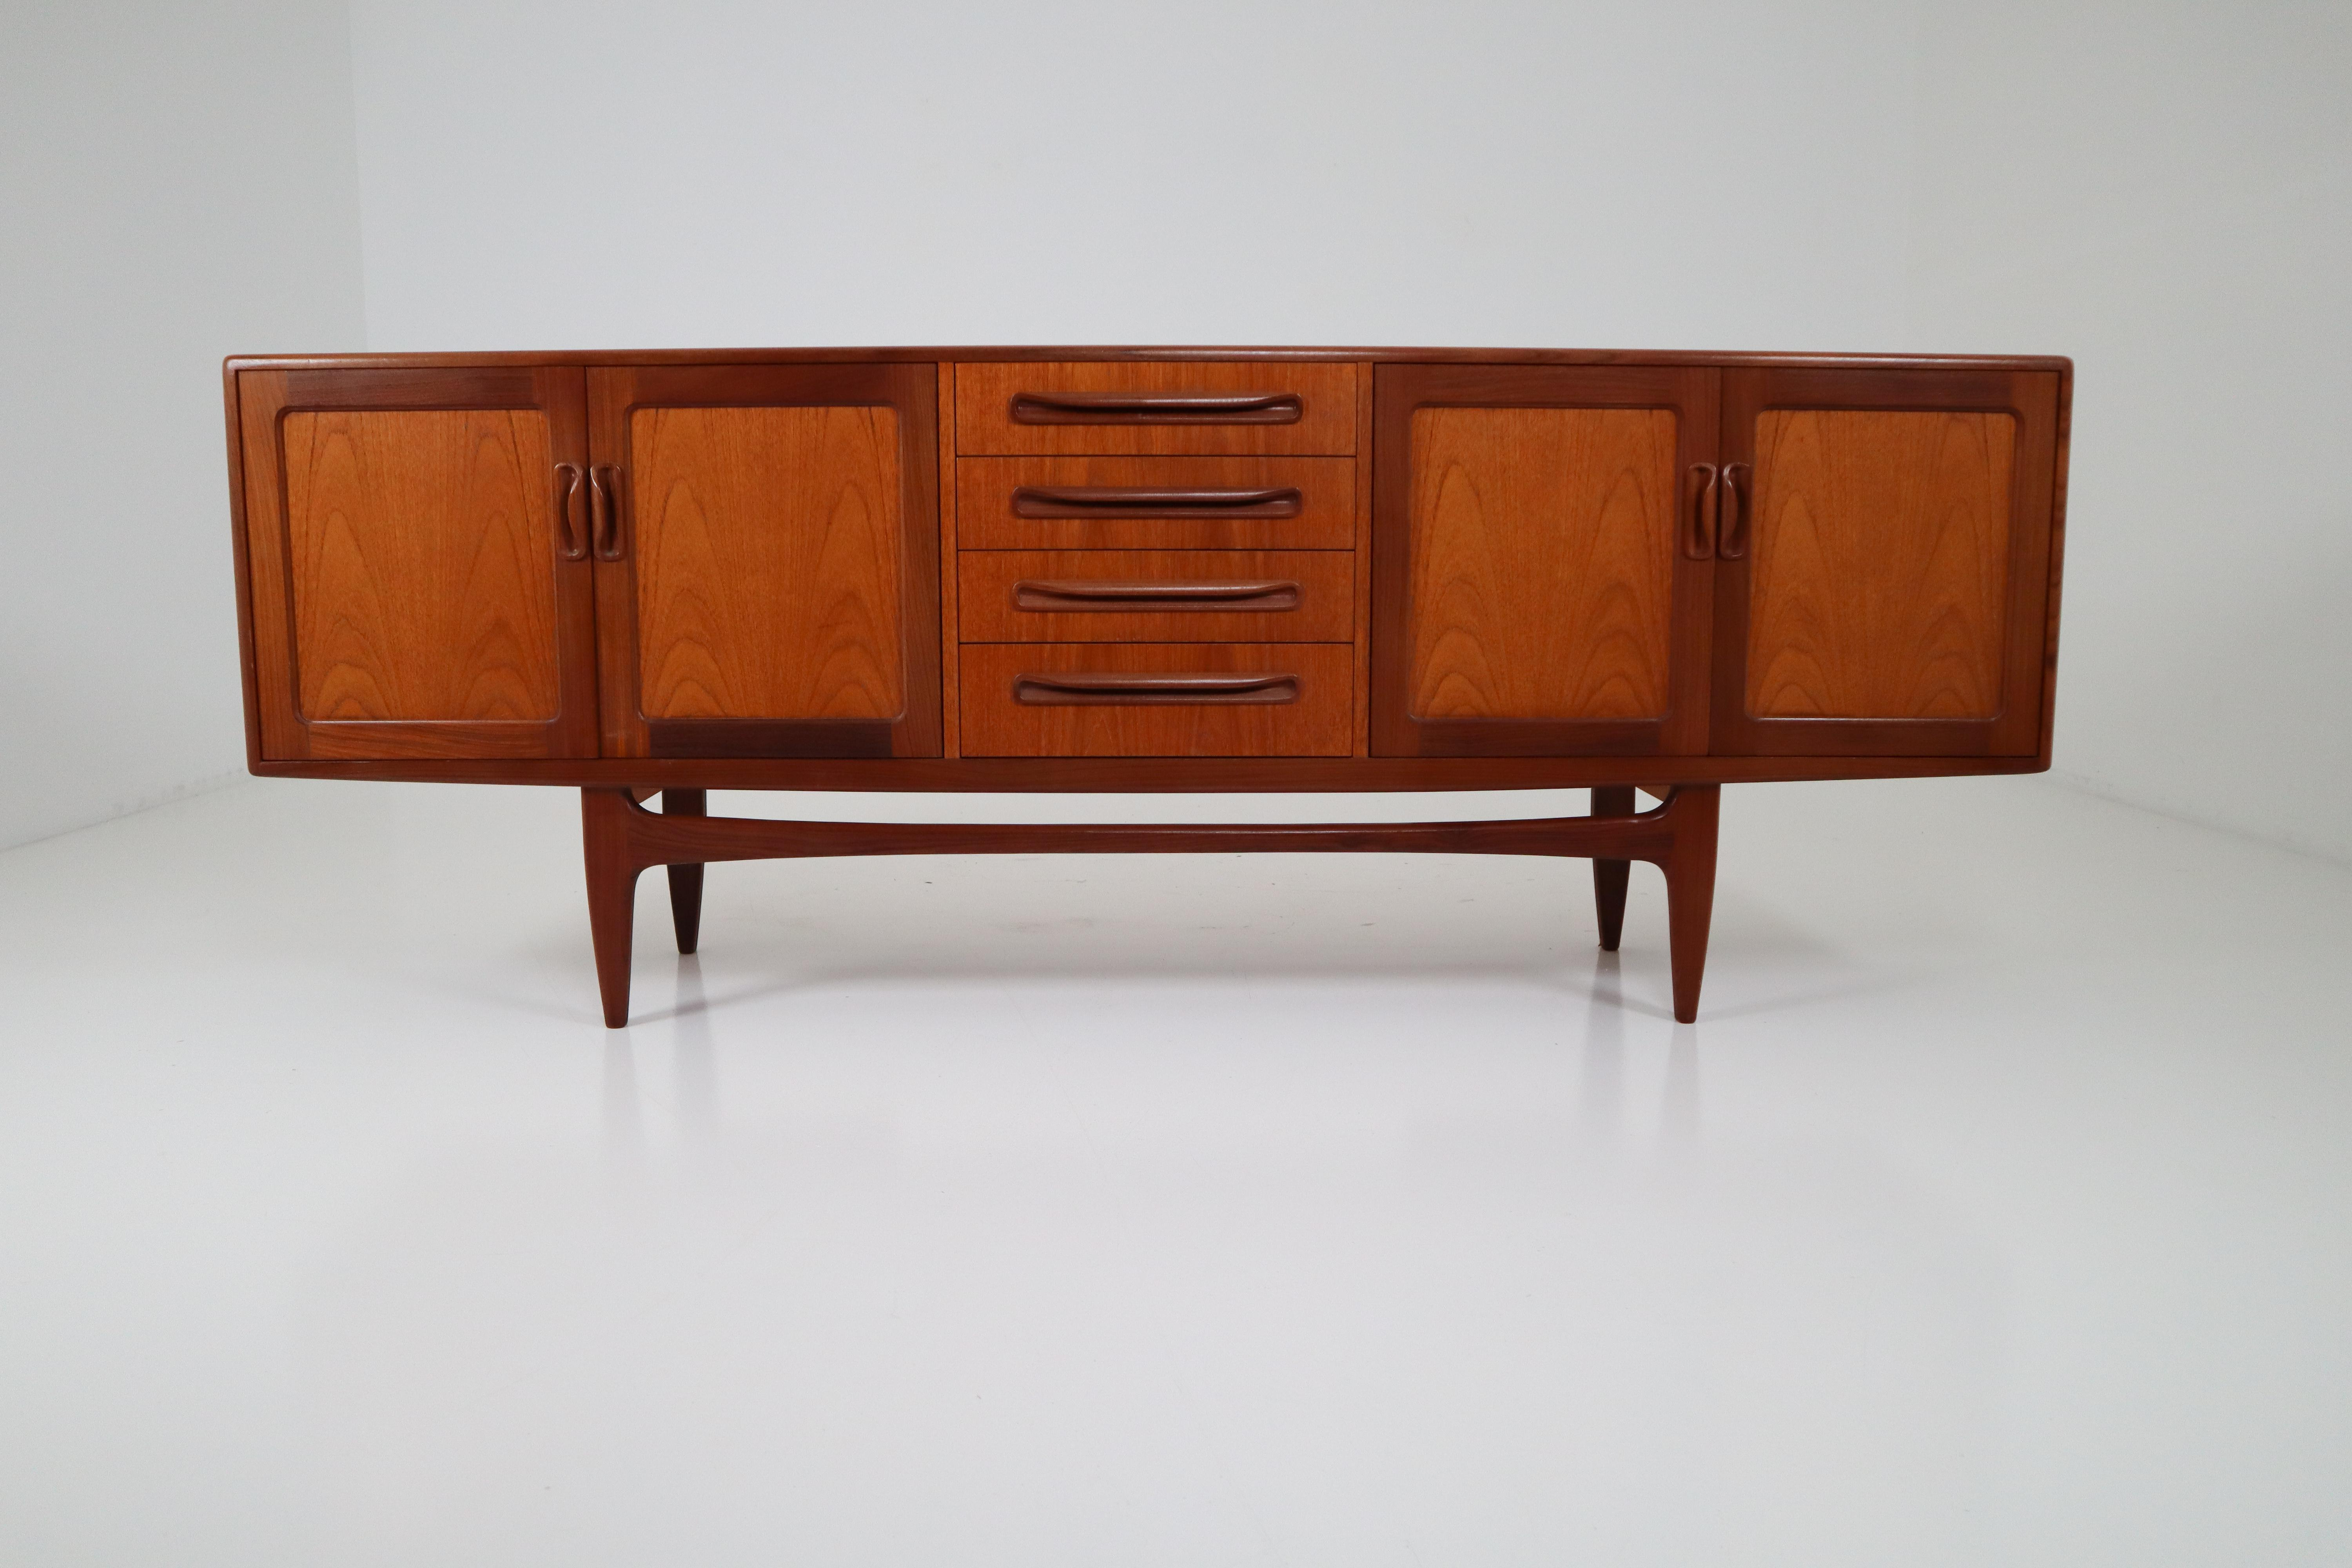 Well Liked Mid Century Modern Teak Credenza Or Sideboardkofod Larsen Within 4 Door Wood Squares Sideboards (View 15 of 20)